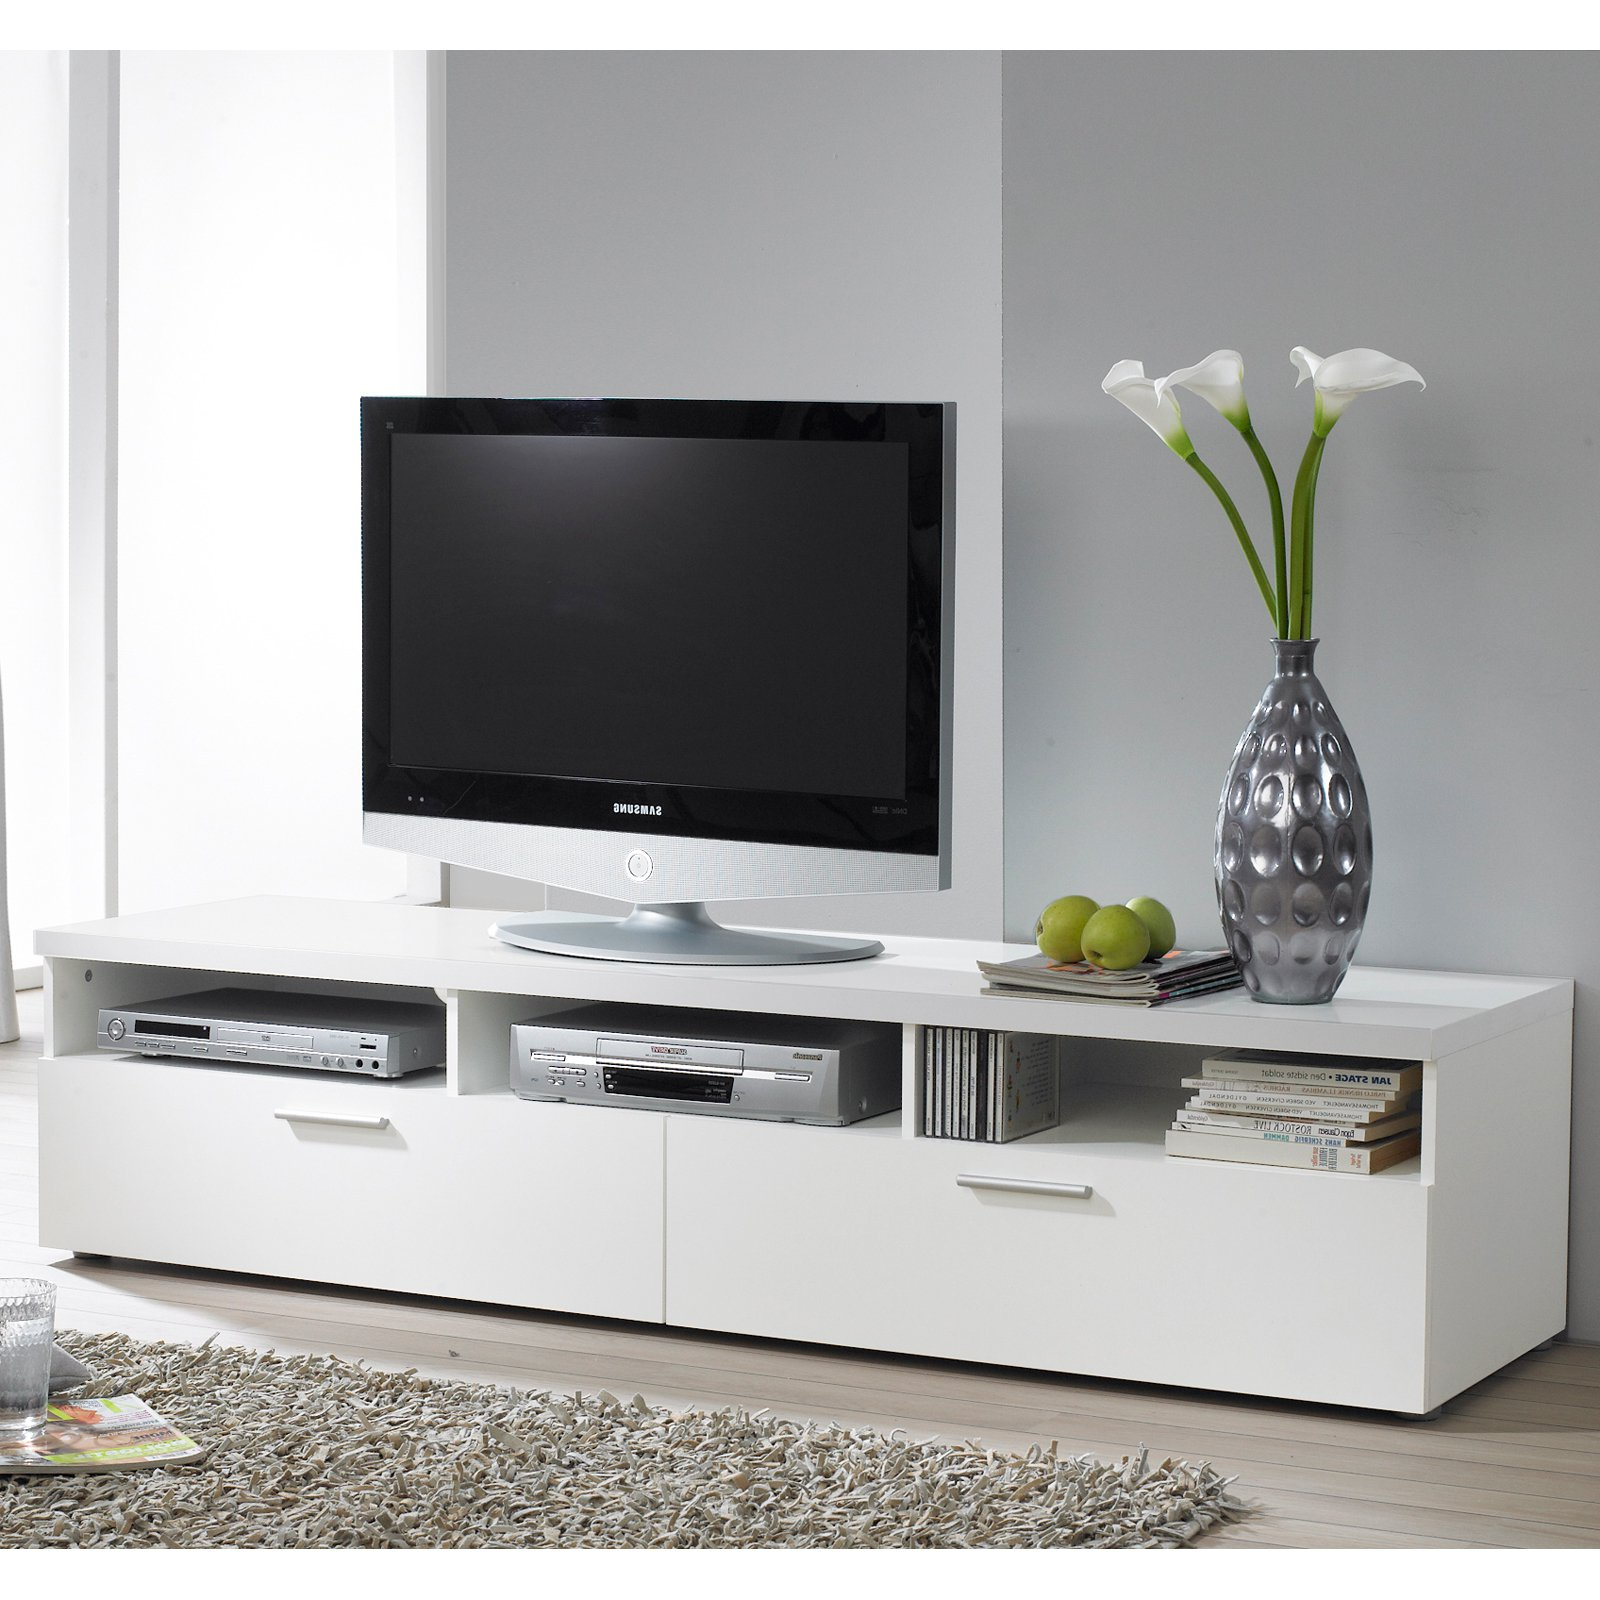 Hayward Tv Stand – Walmart With Regard To Newest Fancy Tv Stands (Gallery 6 of 20)